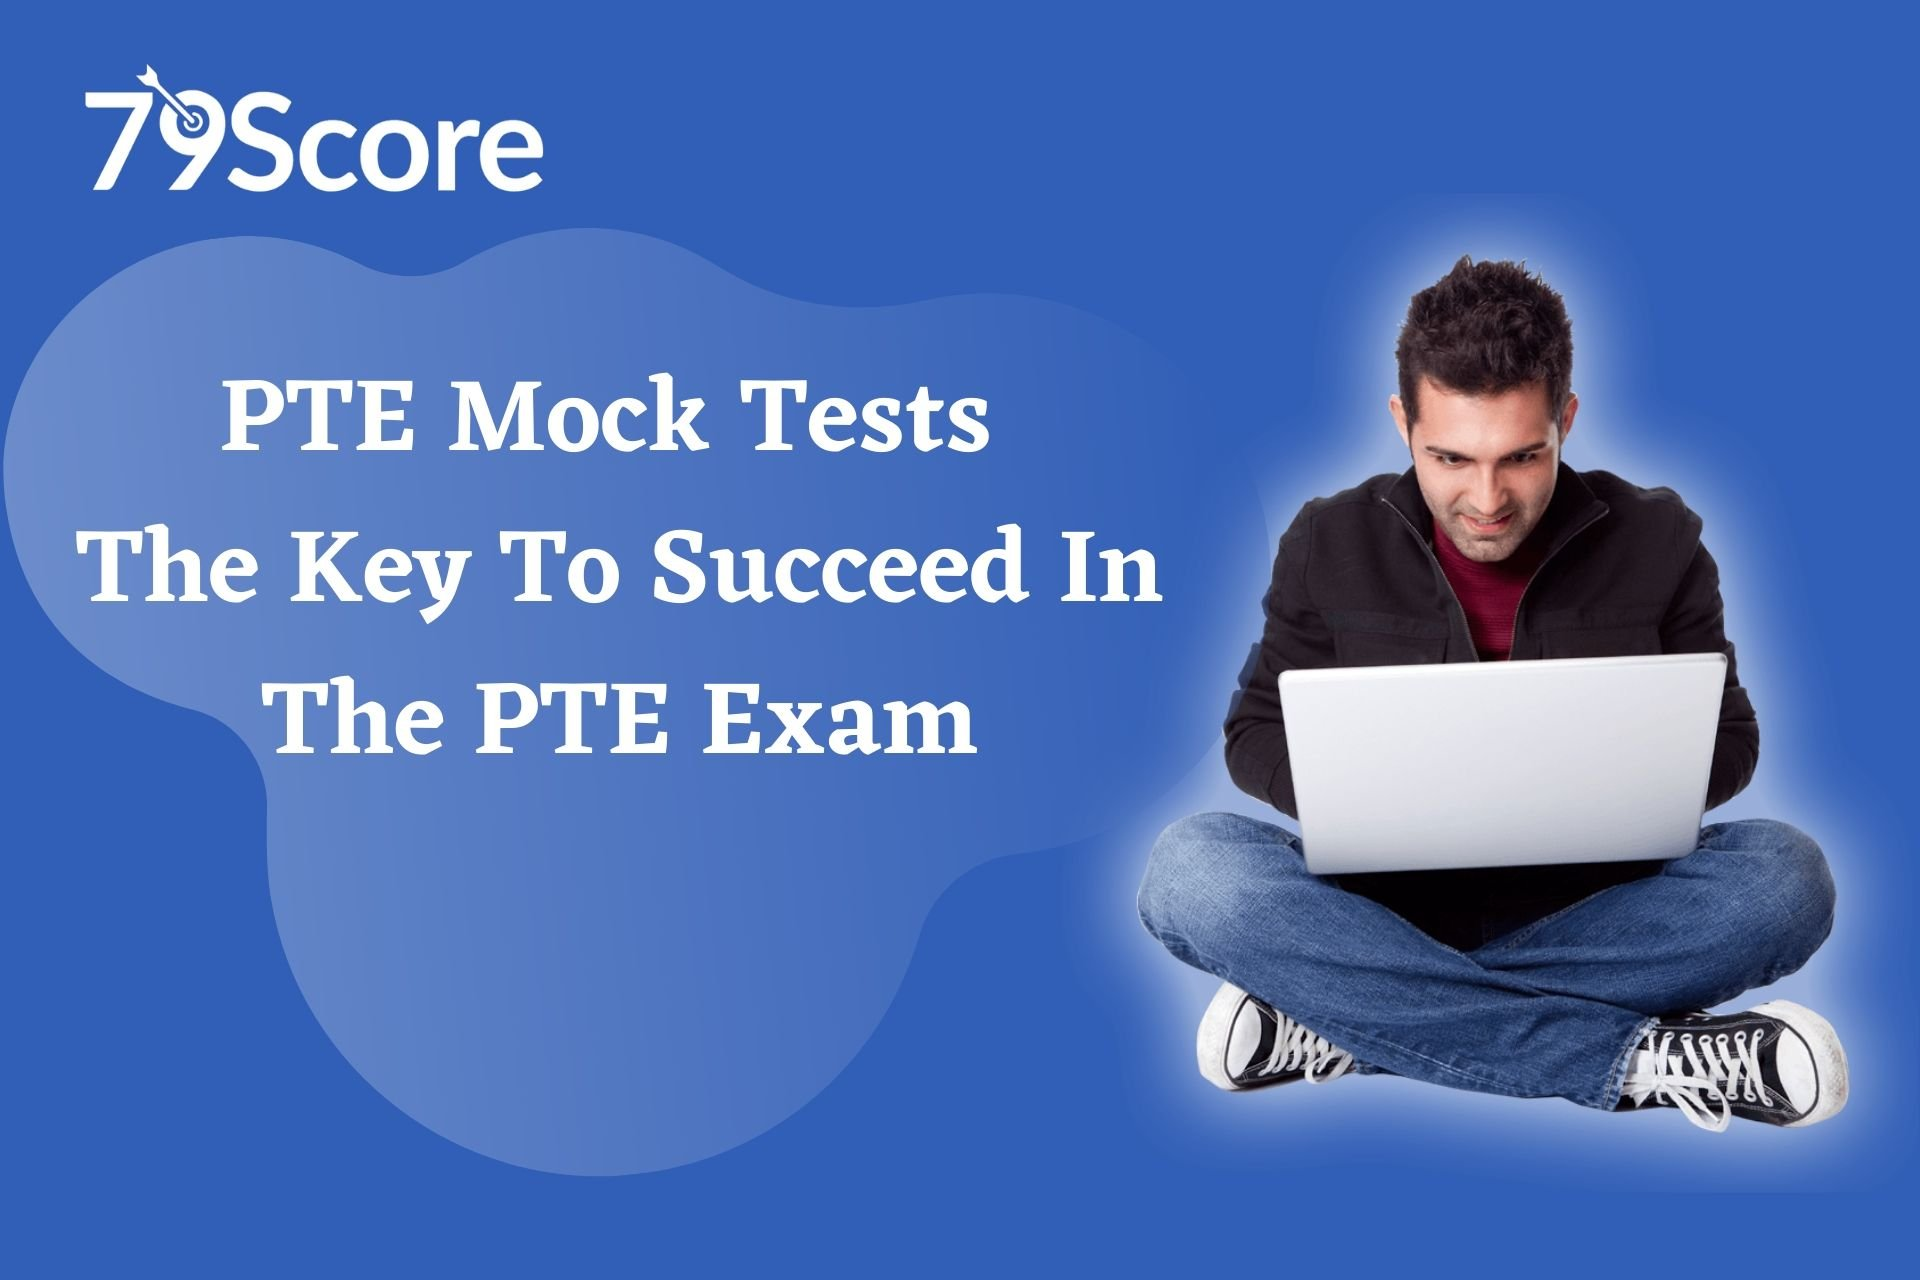 PTE Mock Tests –The Key To Succeed In The PTE Exam